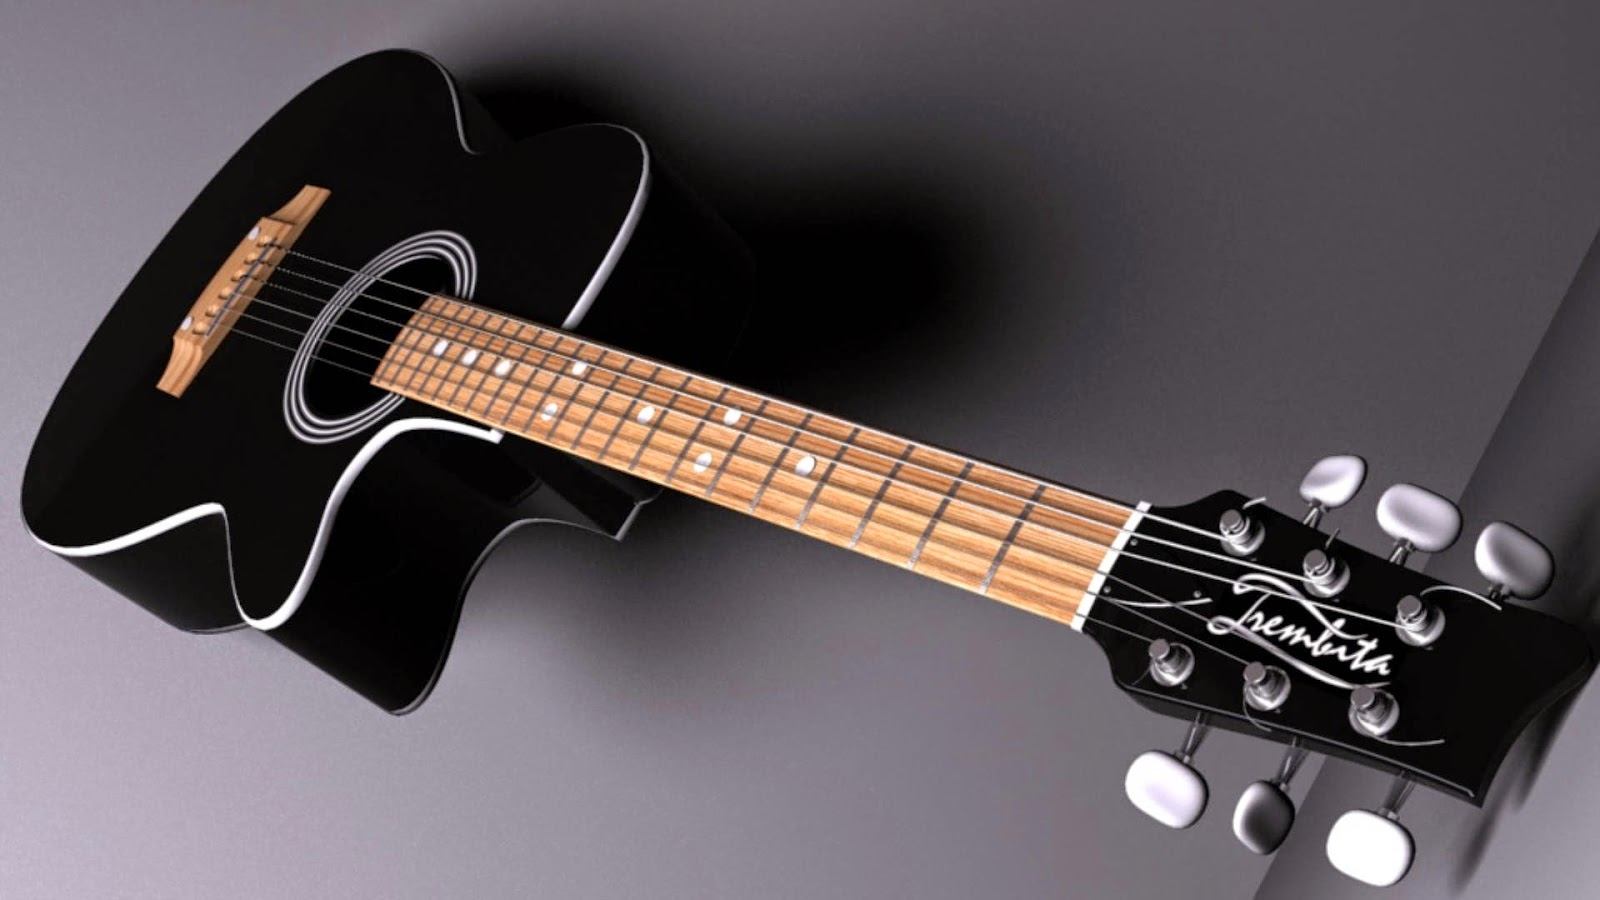 Acoustic Guitar Wallpapers Hd 1600x900